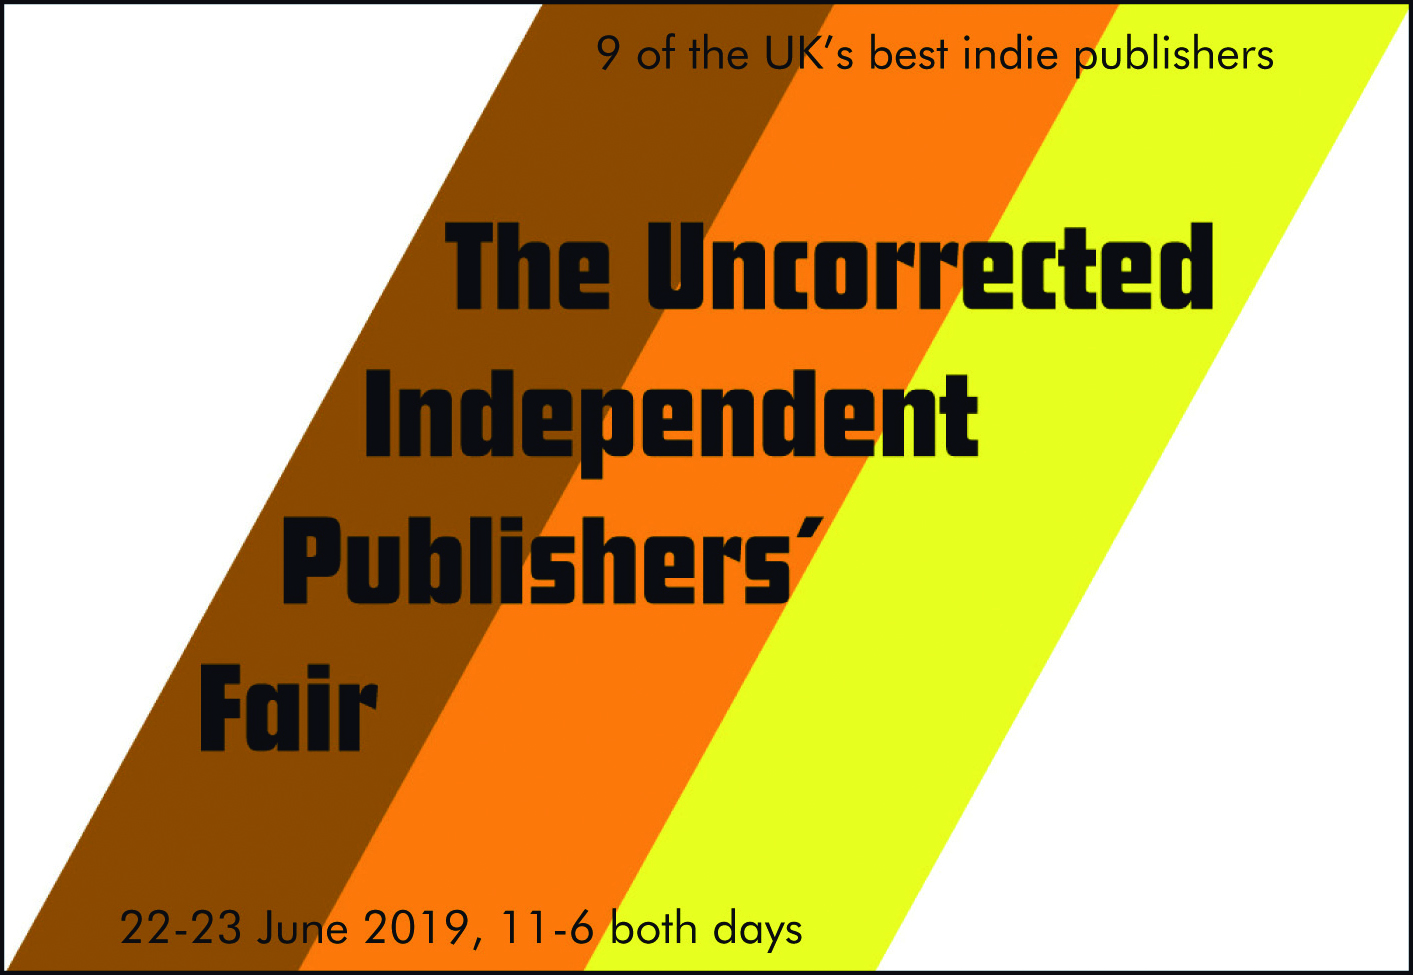 The Uncorrected Independent Publisher's Fair 2019 - 11.00 - 21.00The Peckham Pelican, 92 Pelican Road, SE15 5PYThe Pelican and Tangerine Press welcome 9 of the most exciting and innovative independent publishers operating in the UK today. Paperbacks, prints, letterpress oddities and hand-bound limited editions available at special event prices. Readings on Sunday 23rd at midday.